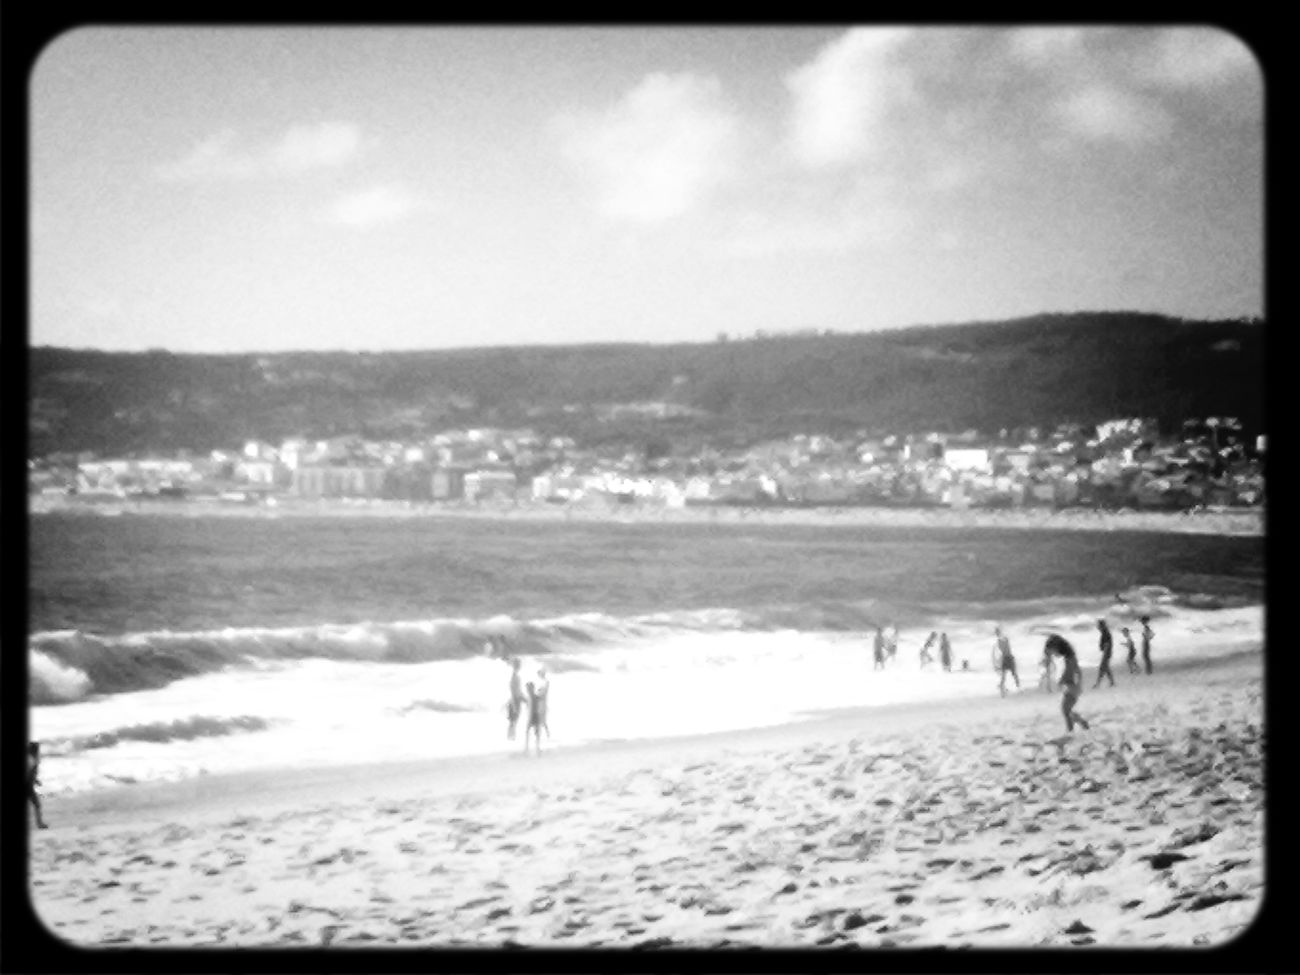 @Figueira da foz beach black and white black & white summer